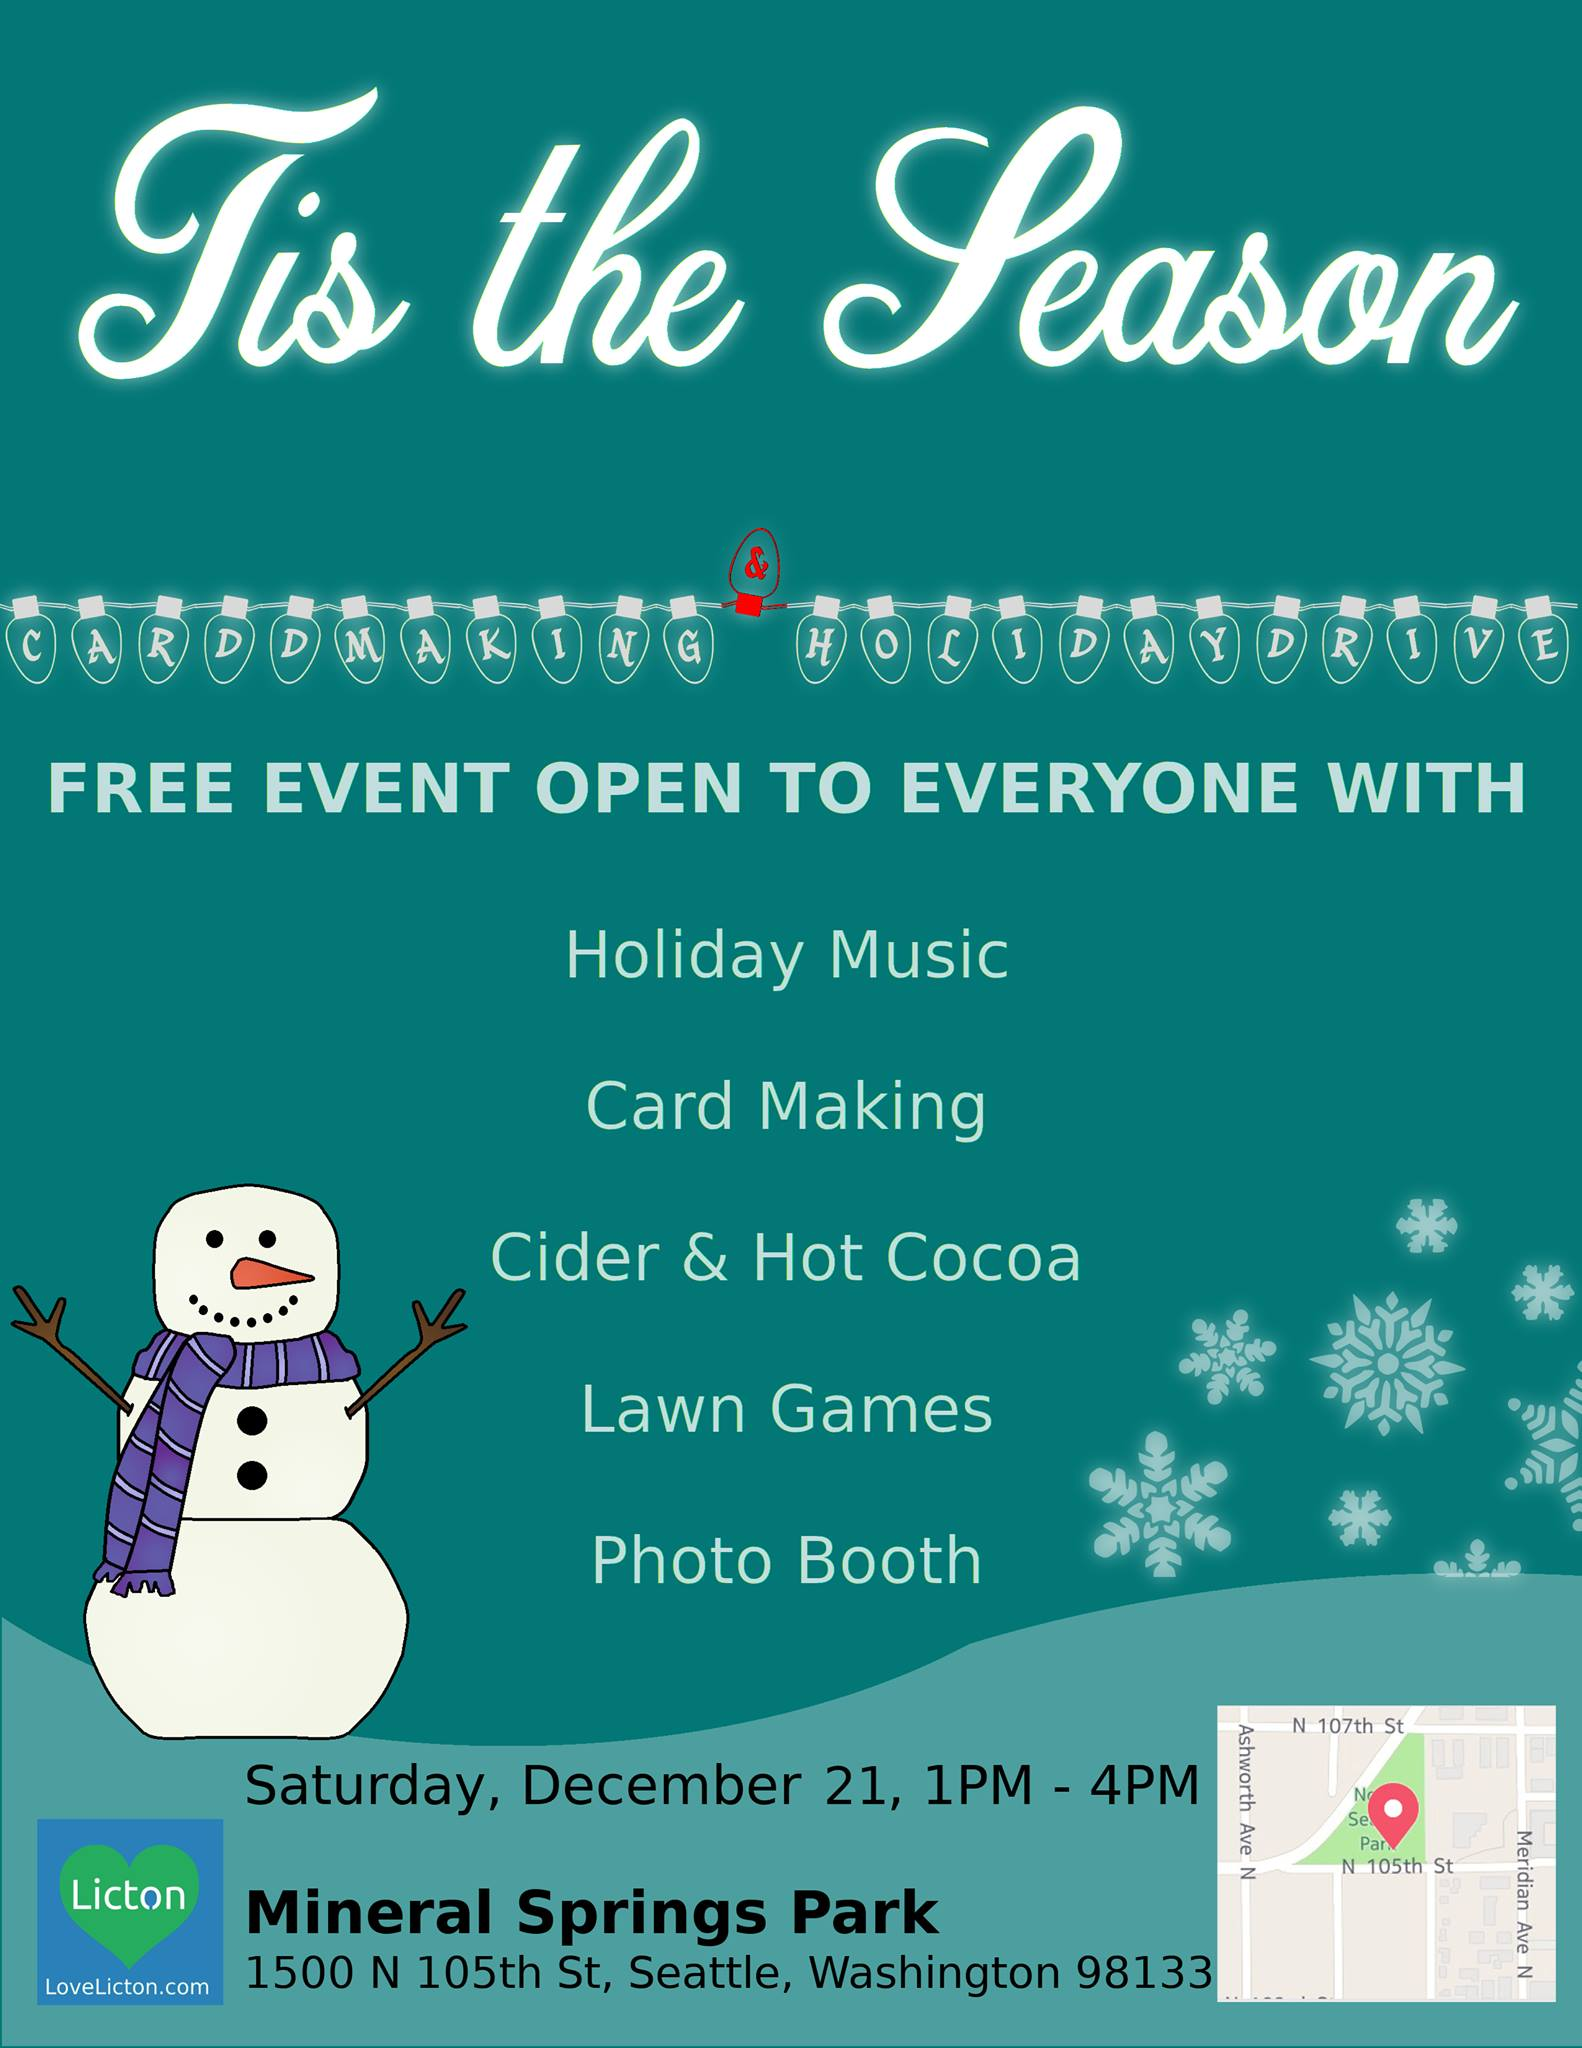 Tis The Season Mineral Springs Park Event 2019